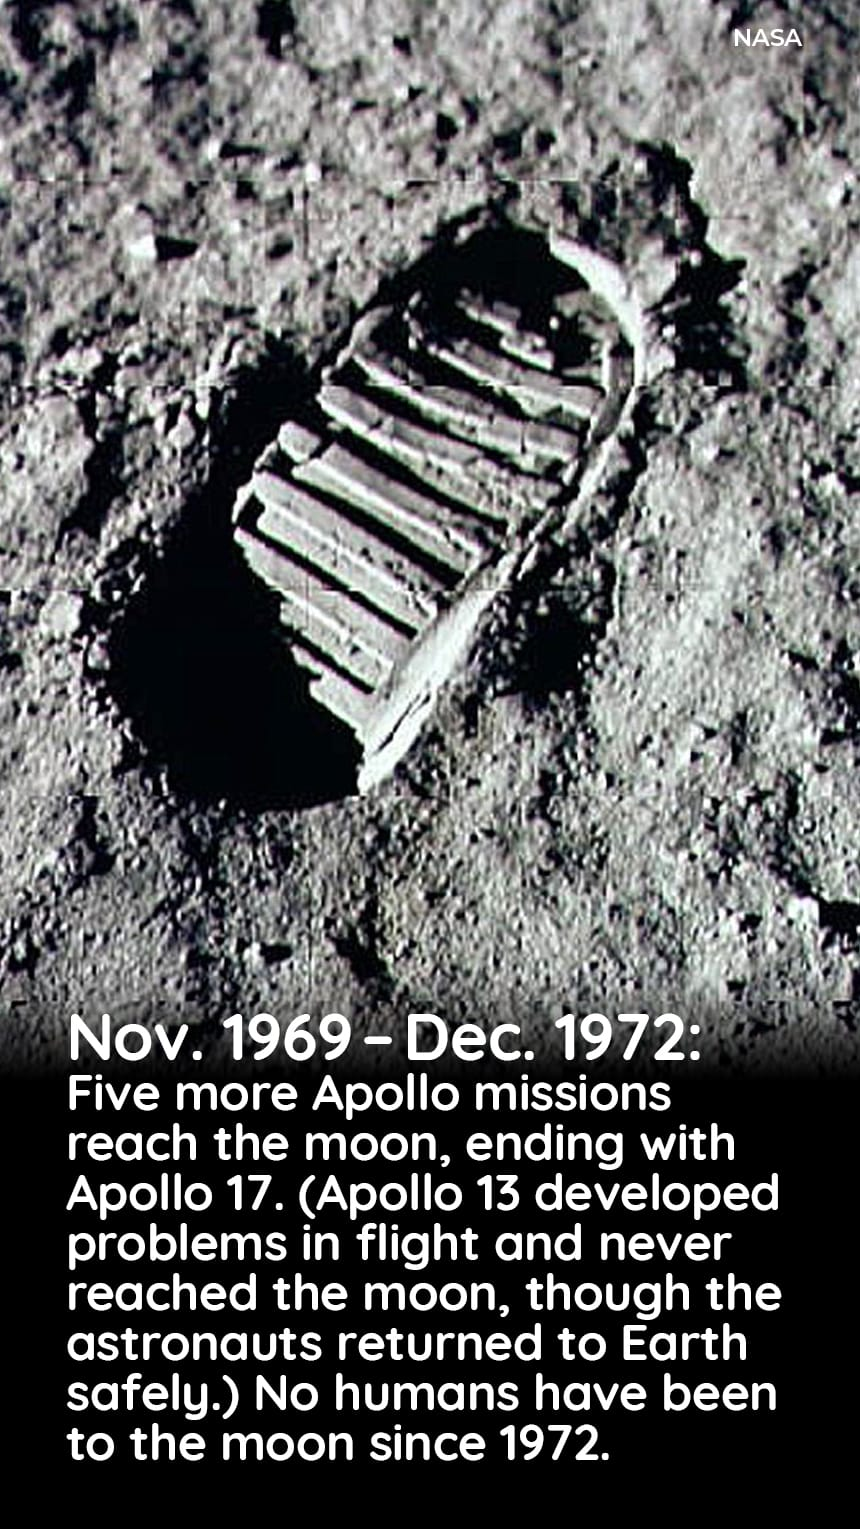 Nov. 1969 to Dec. 1972: Five more Apollo missions reach the moon, ending with Apollo 17. (Apollo 13 developed problems in flight and never reached the moon, though the astronauts returned to Earth safely.) No humans have been to the moon since 1962.